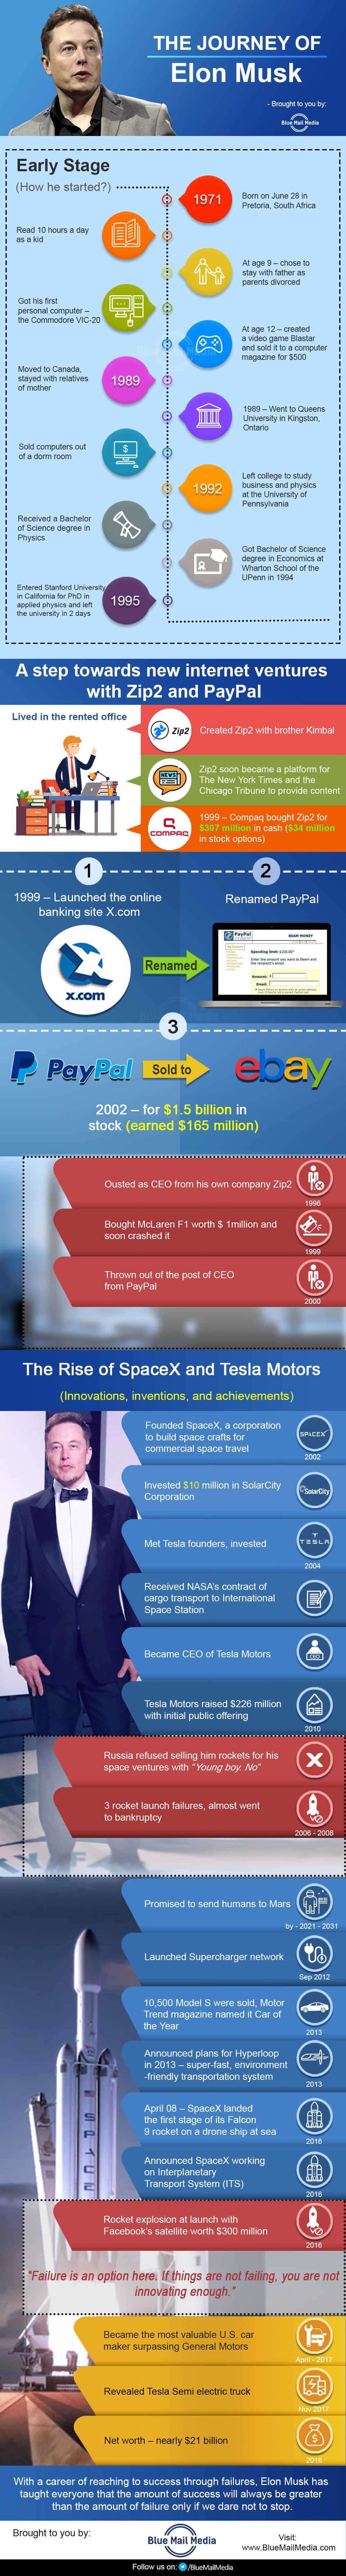 The Journey of Elon Musk